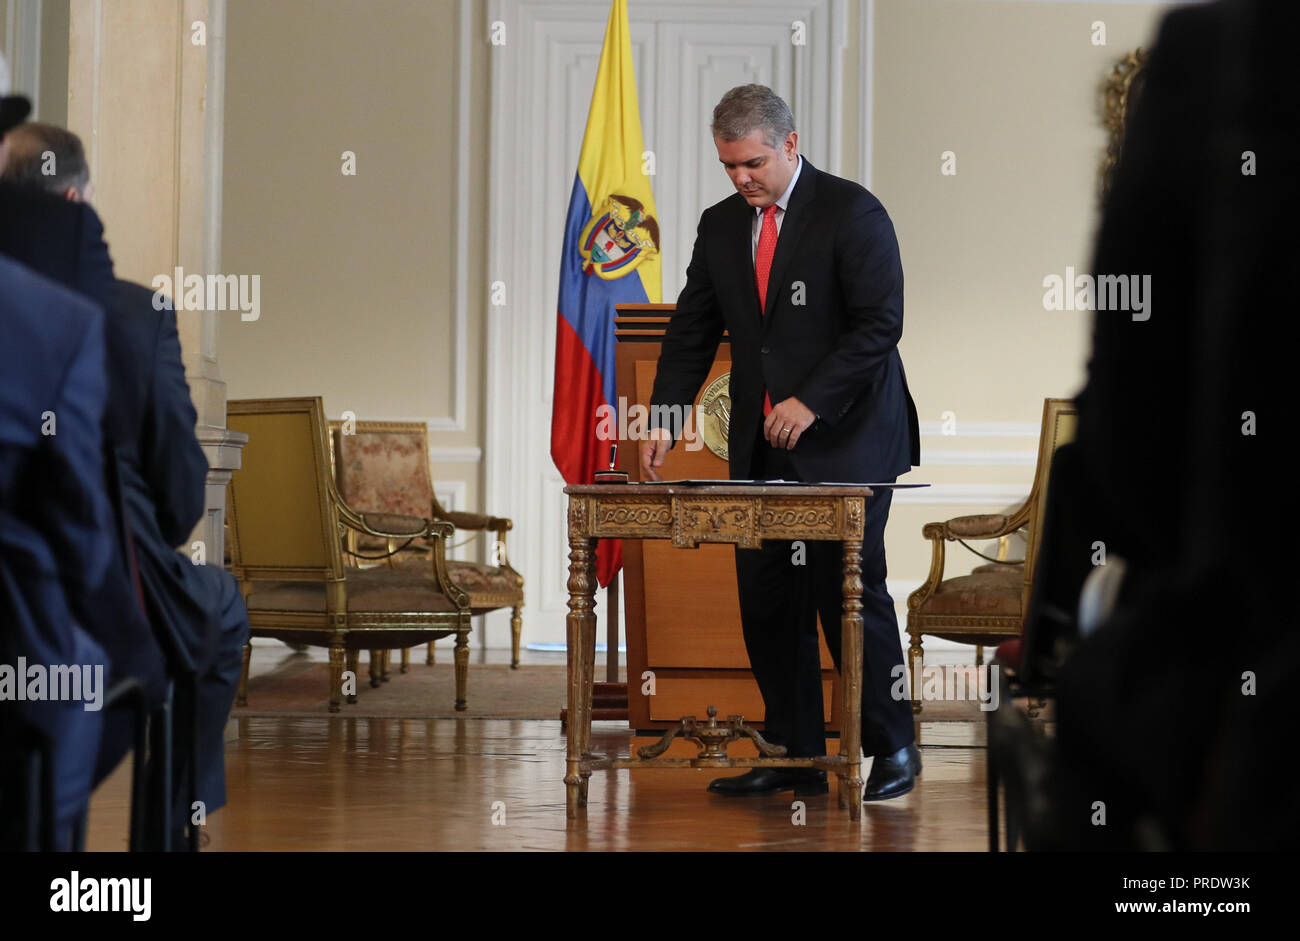 Colombian President Ivan Duque attends to the signing of a decree to authorize Police to confiscate personal amount of drugs or forbidden substances, in Bogota, Colombia, on 1 October 2018. EFE/Mauricio Dueñas Castañeda - Stock Image